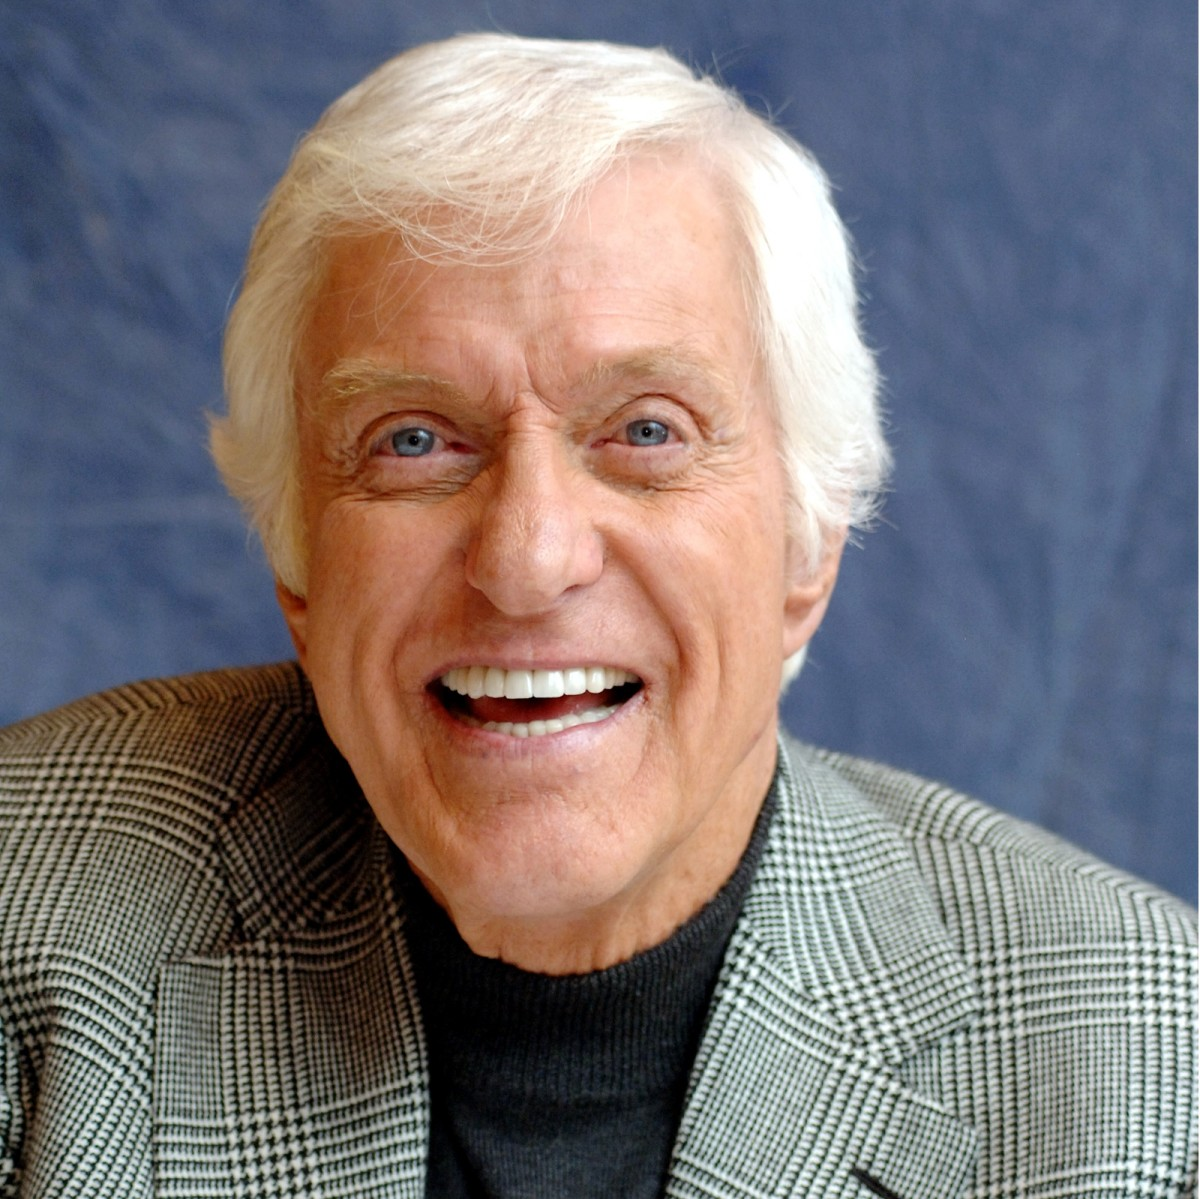 Dick Van Dyke photo via Getty Images